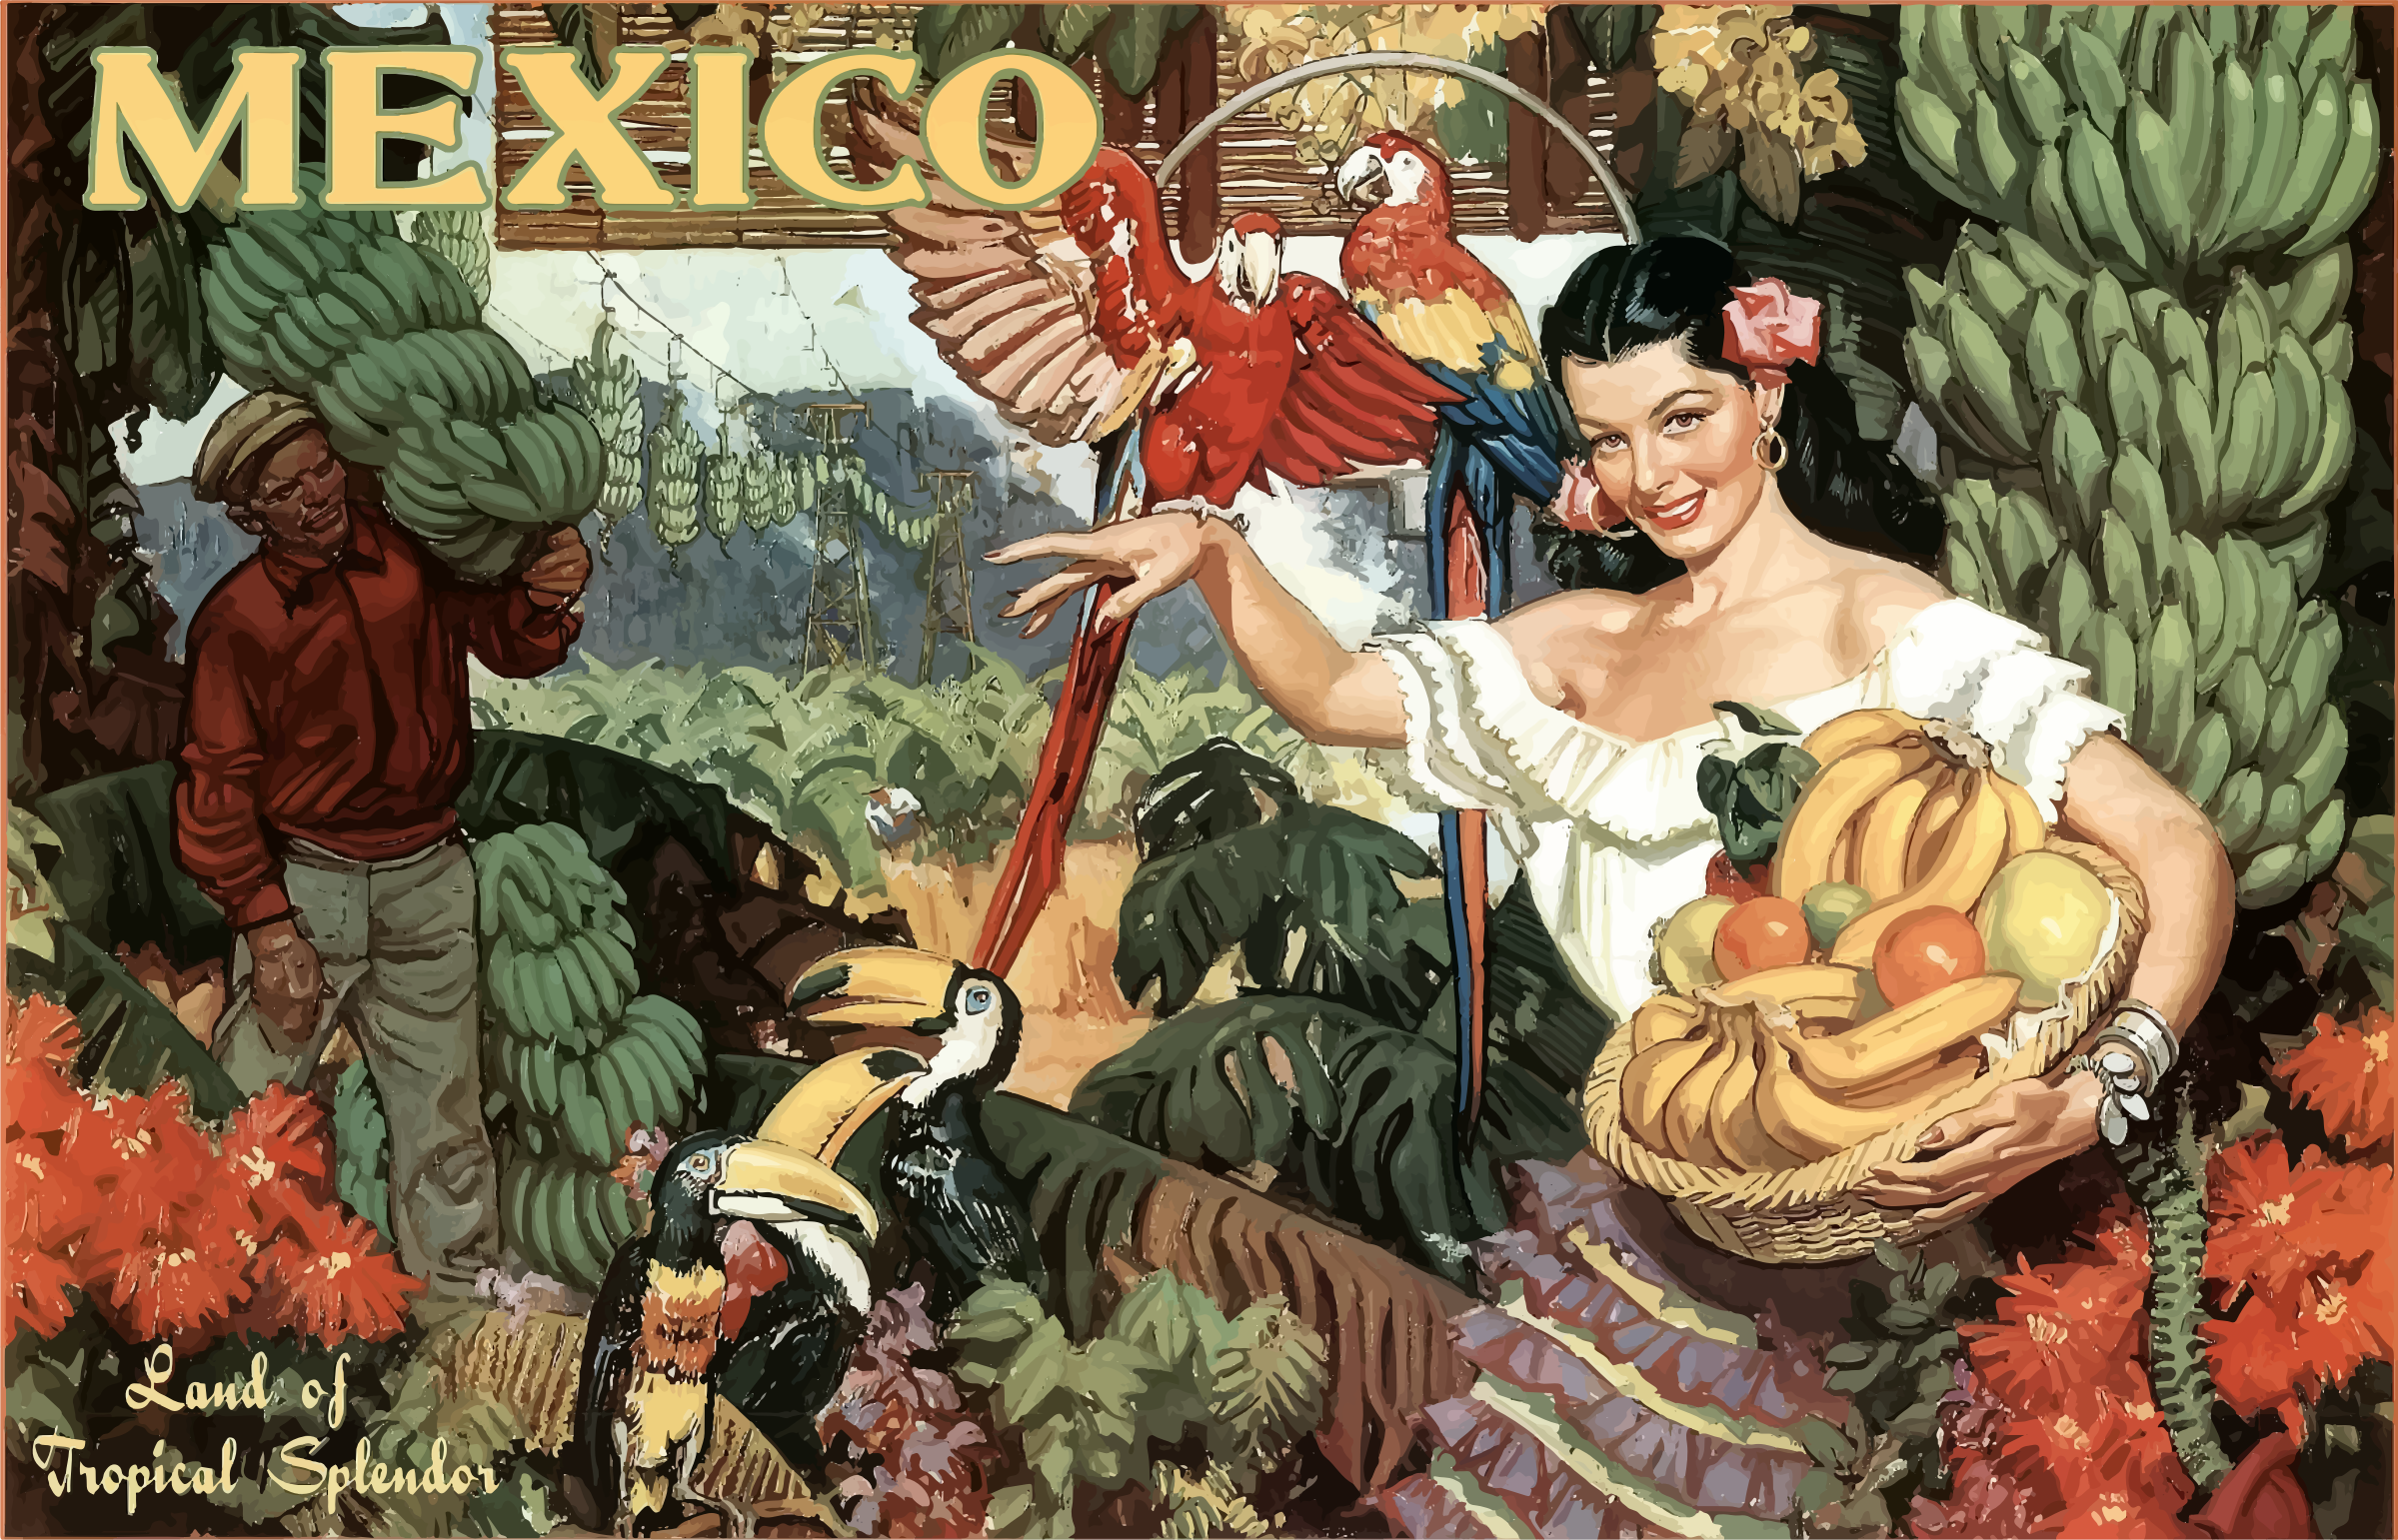 Vintage Travel Poster Mexico 2 by GDJ